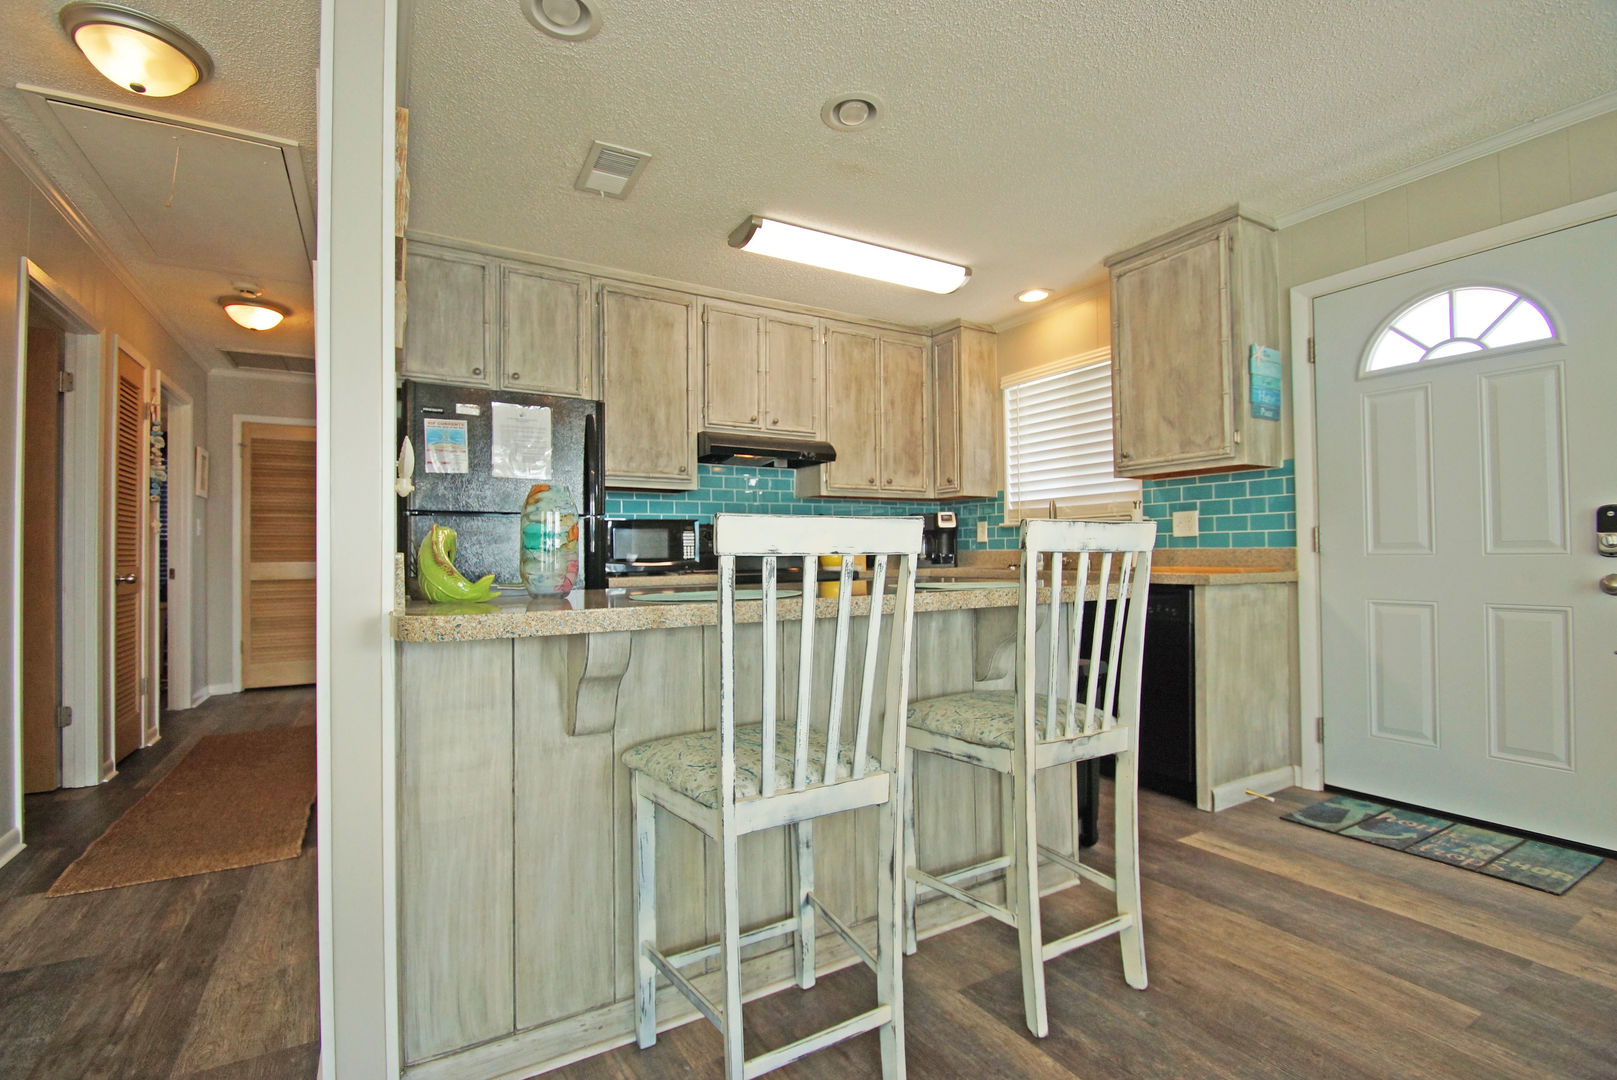 Kitchen Counter, Stools, Refrigerator, Microwave, and Coffee Maker.